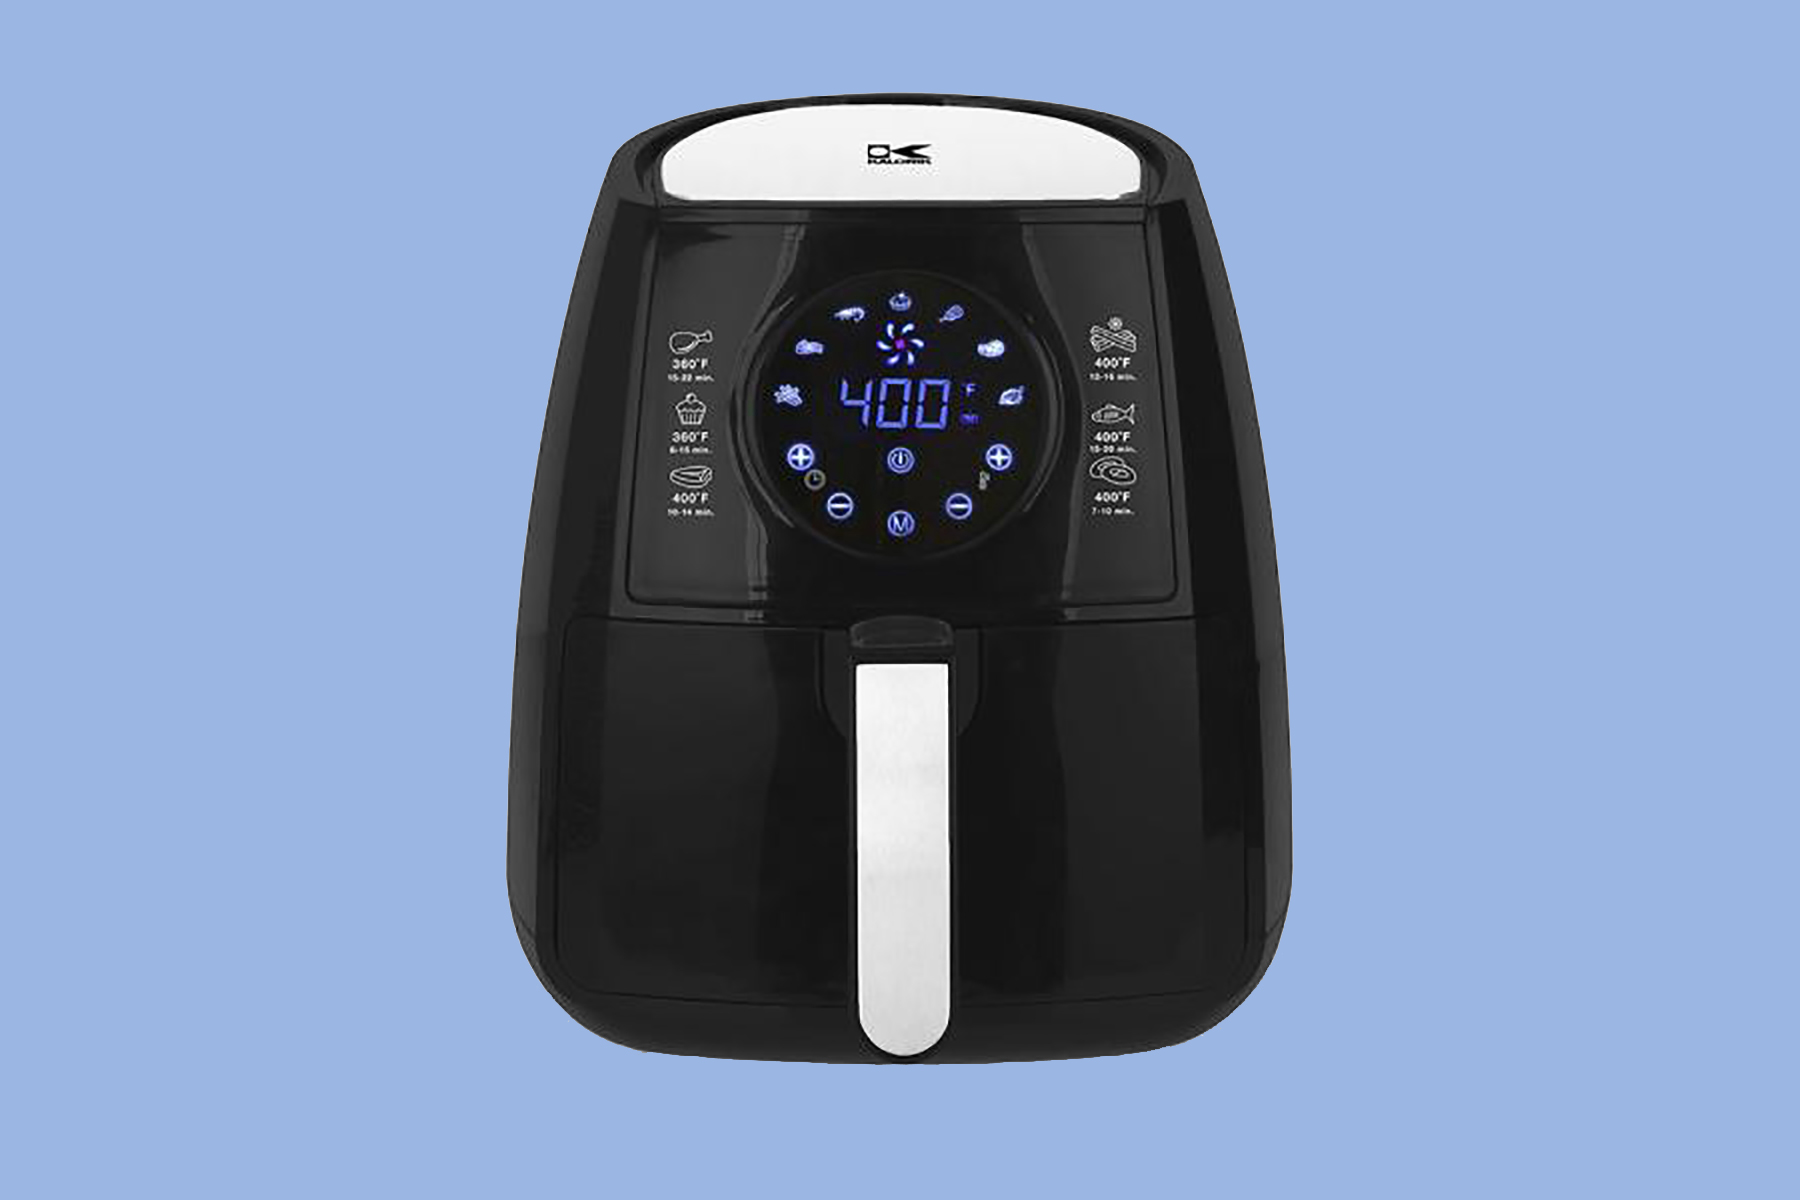 3.2 Qt. Digital Display Air Fryer in Black